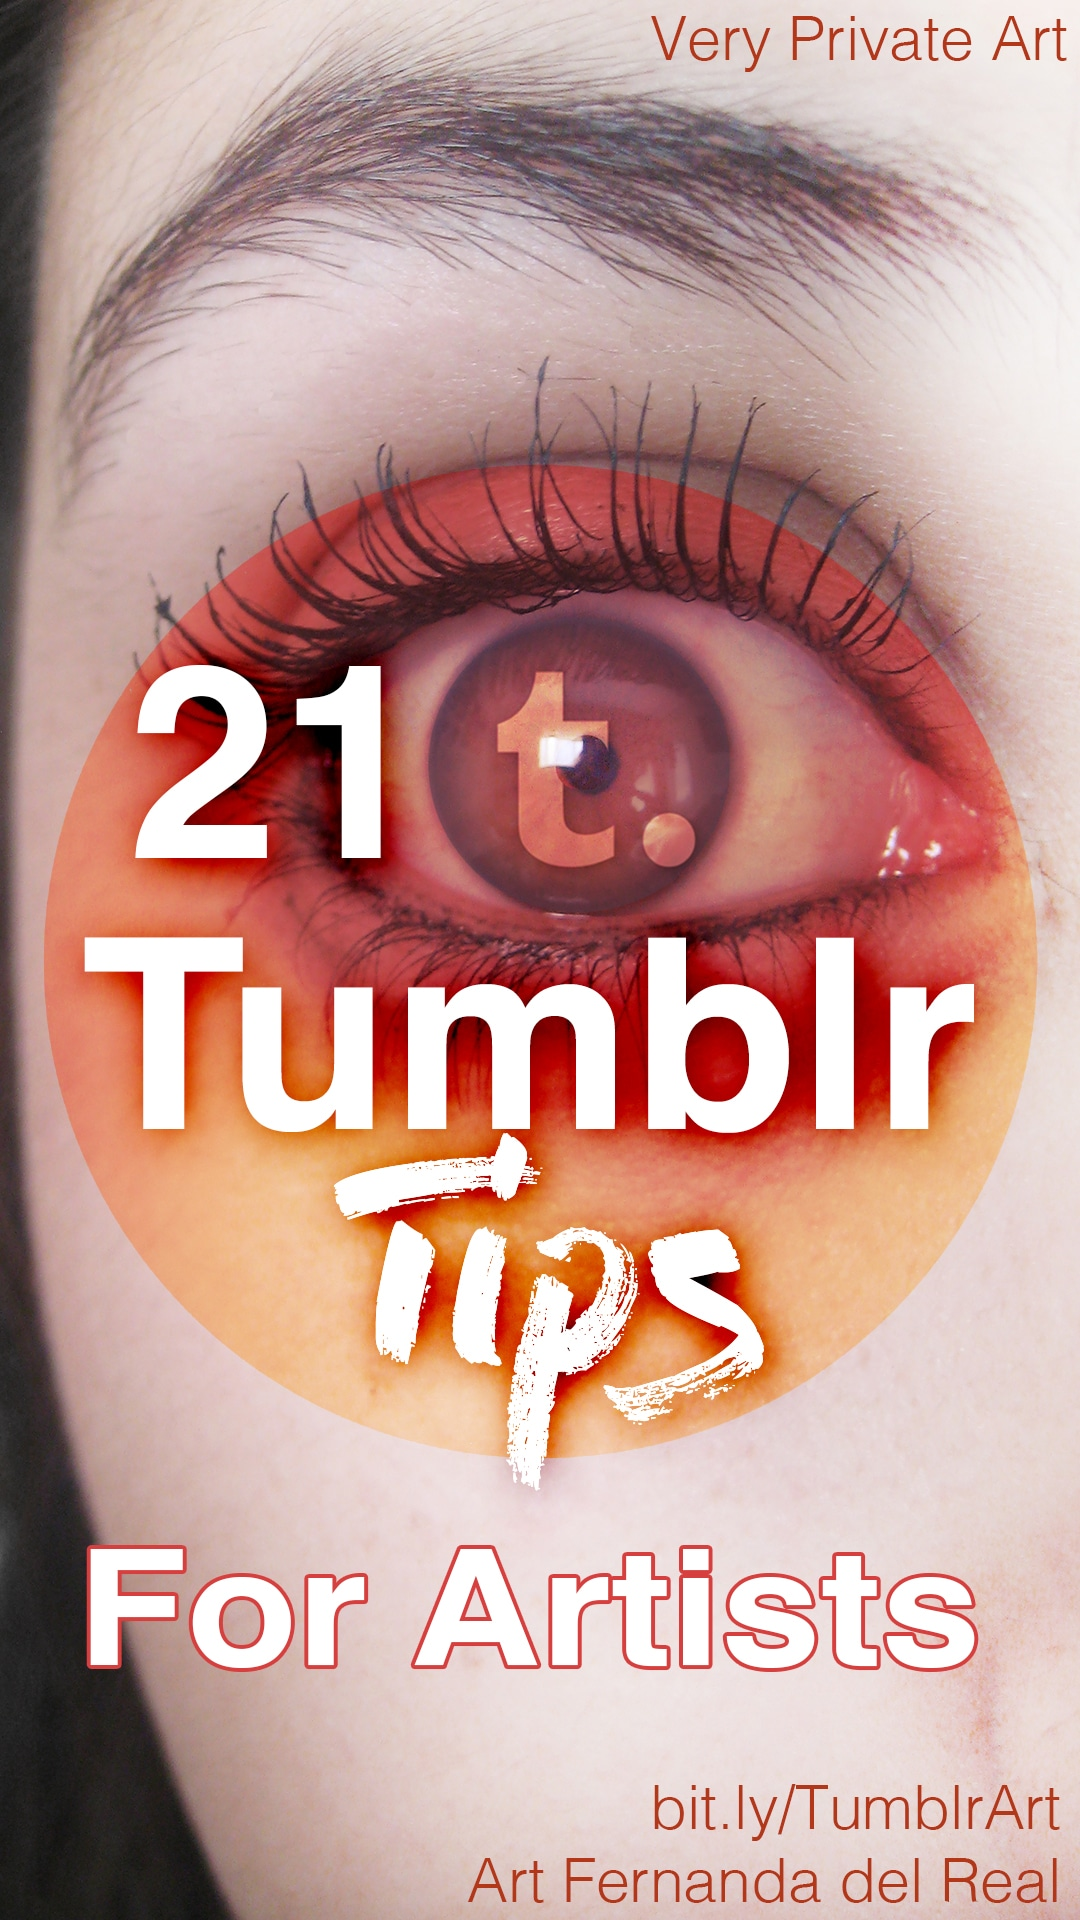 Tumblr tips for artists